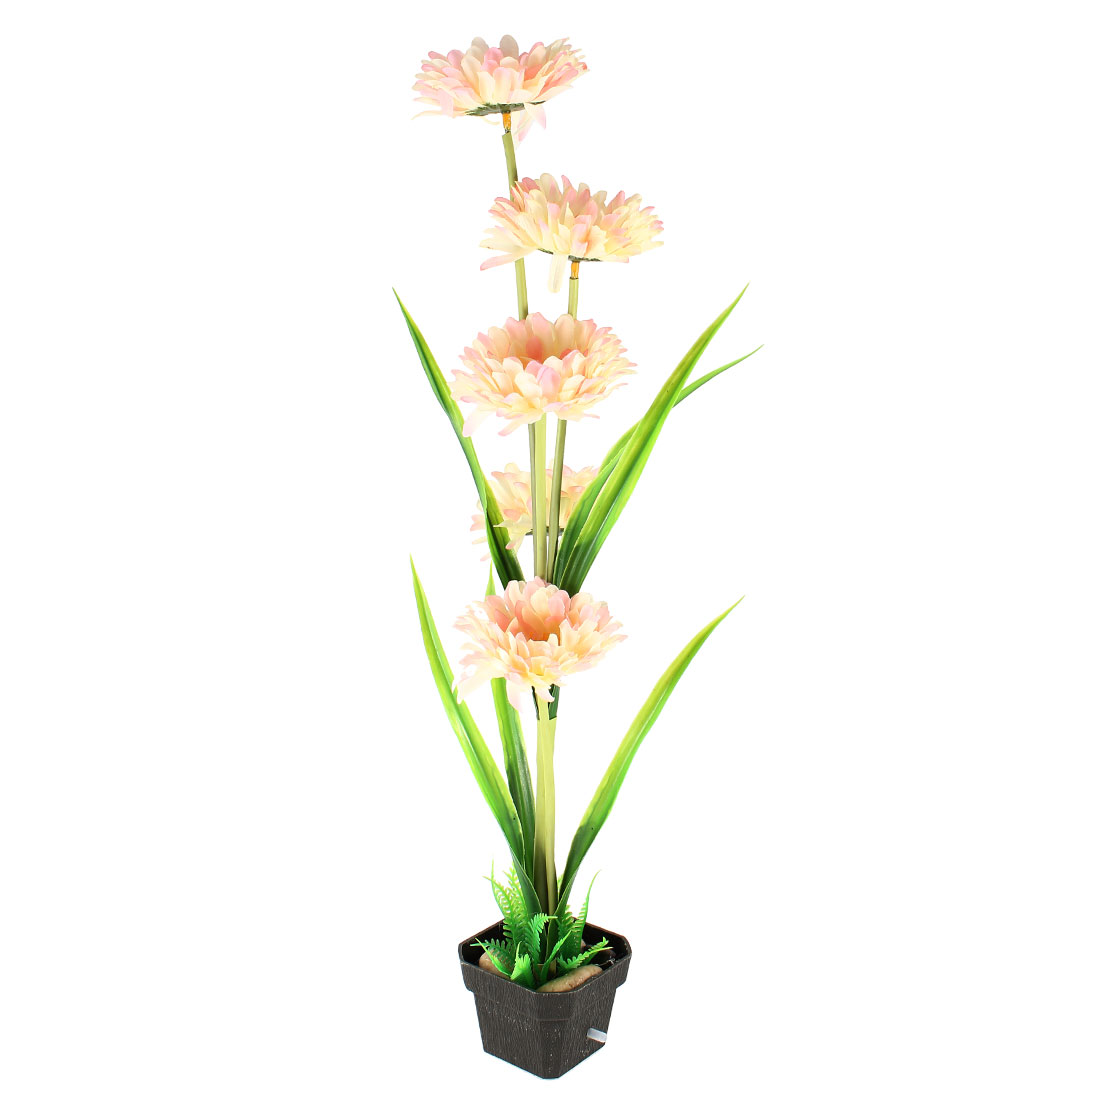 Fish-Tank-9-8-High-Plastic-Beige-Pink-Flower-Grass-Plants-w-Air-Stone